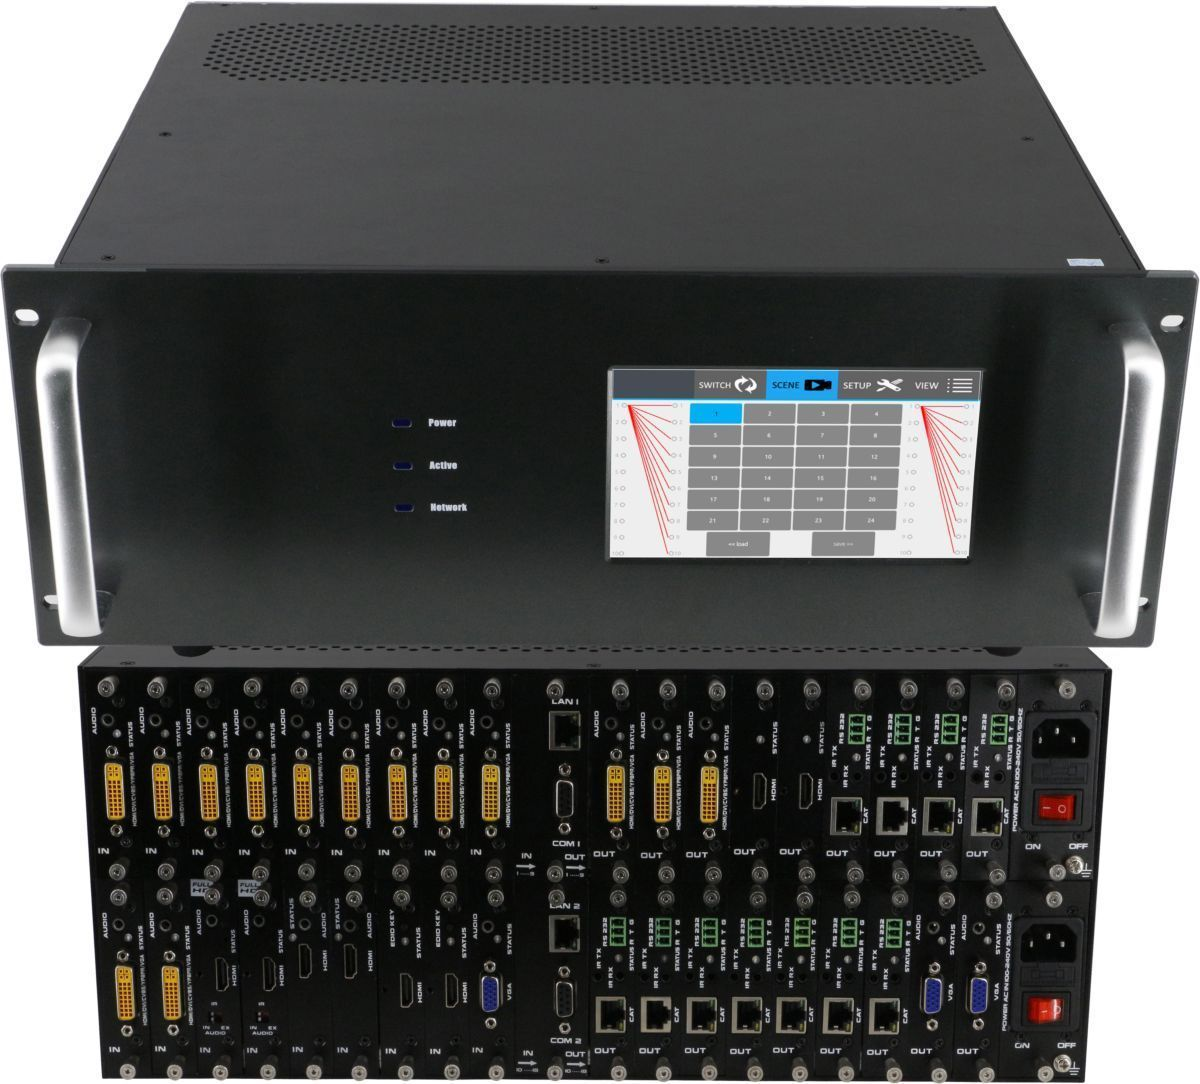 14x14 HDMI Matrix Switcher with a Touchscreen